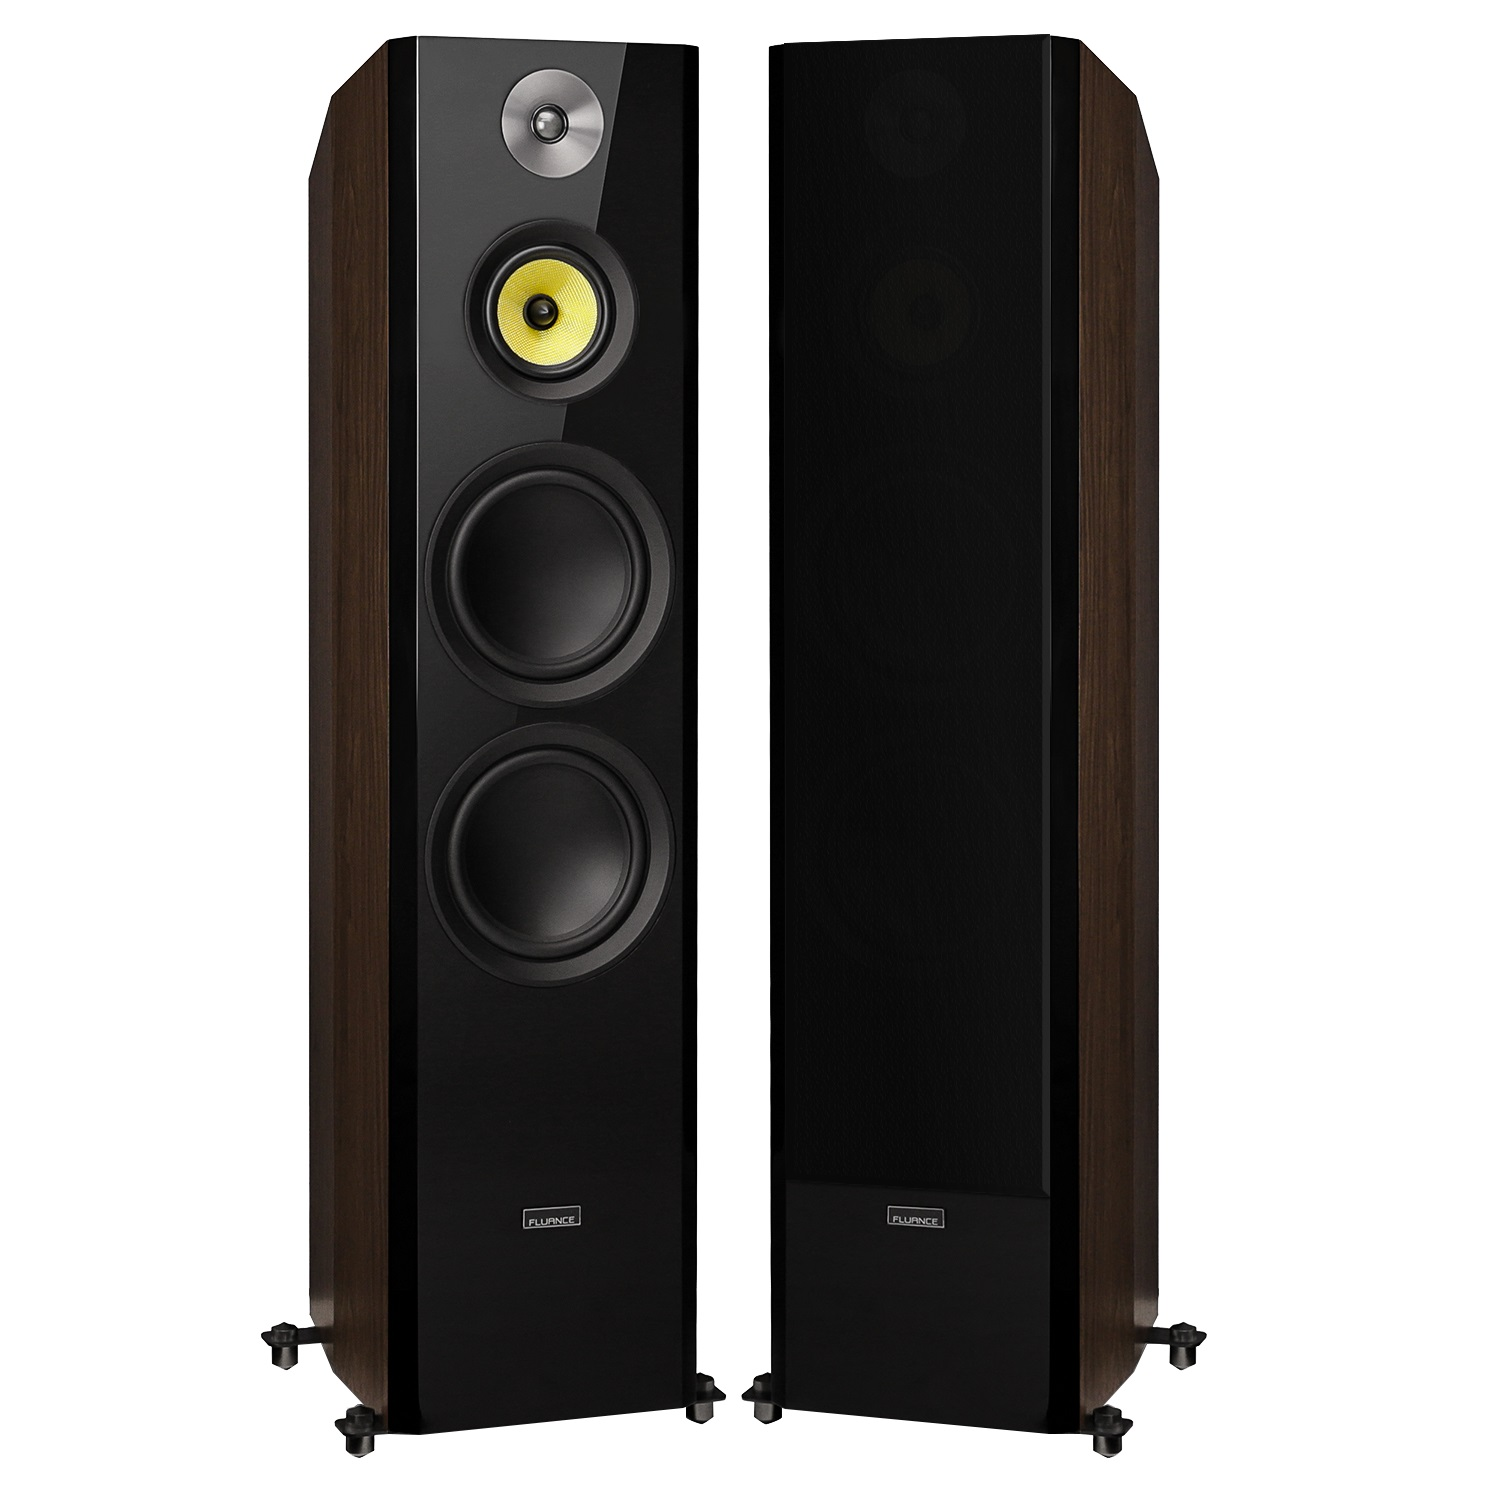 Signature Series Hi-Fi Three-way Floorstanding Speaker